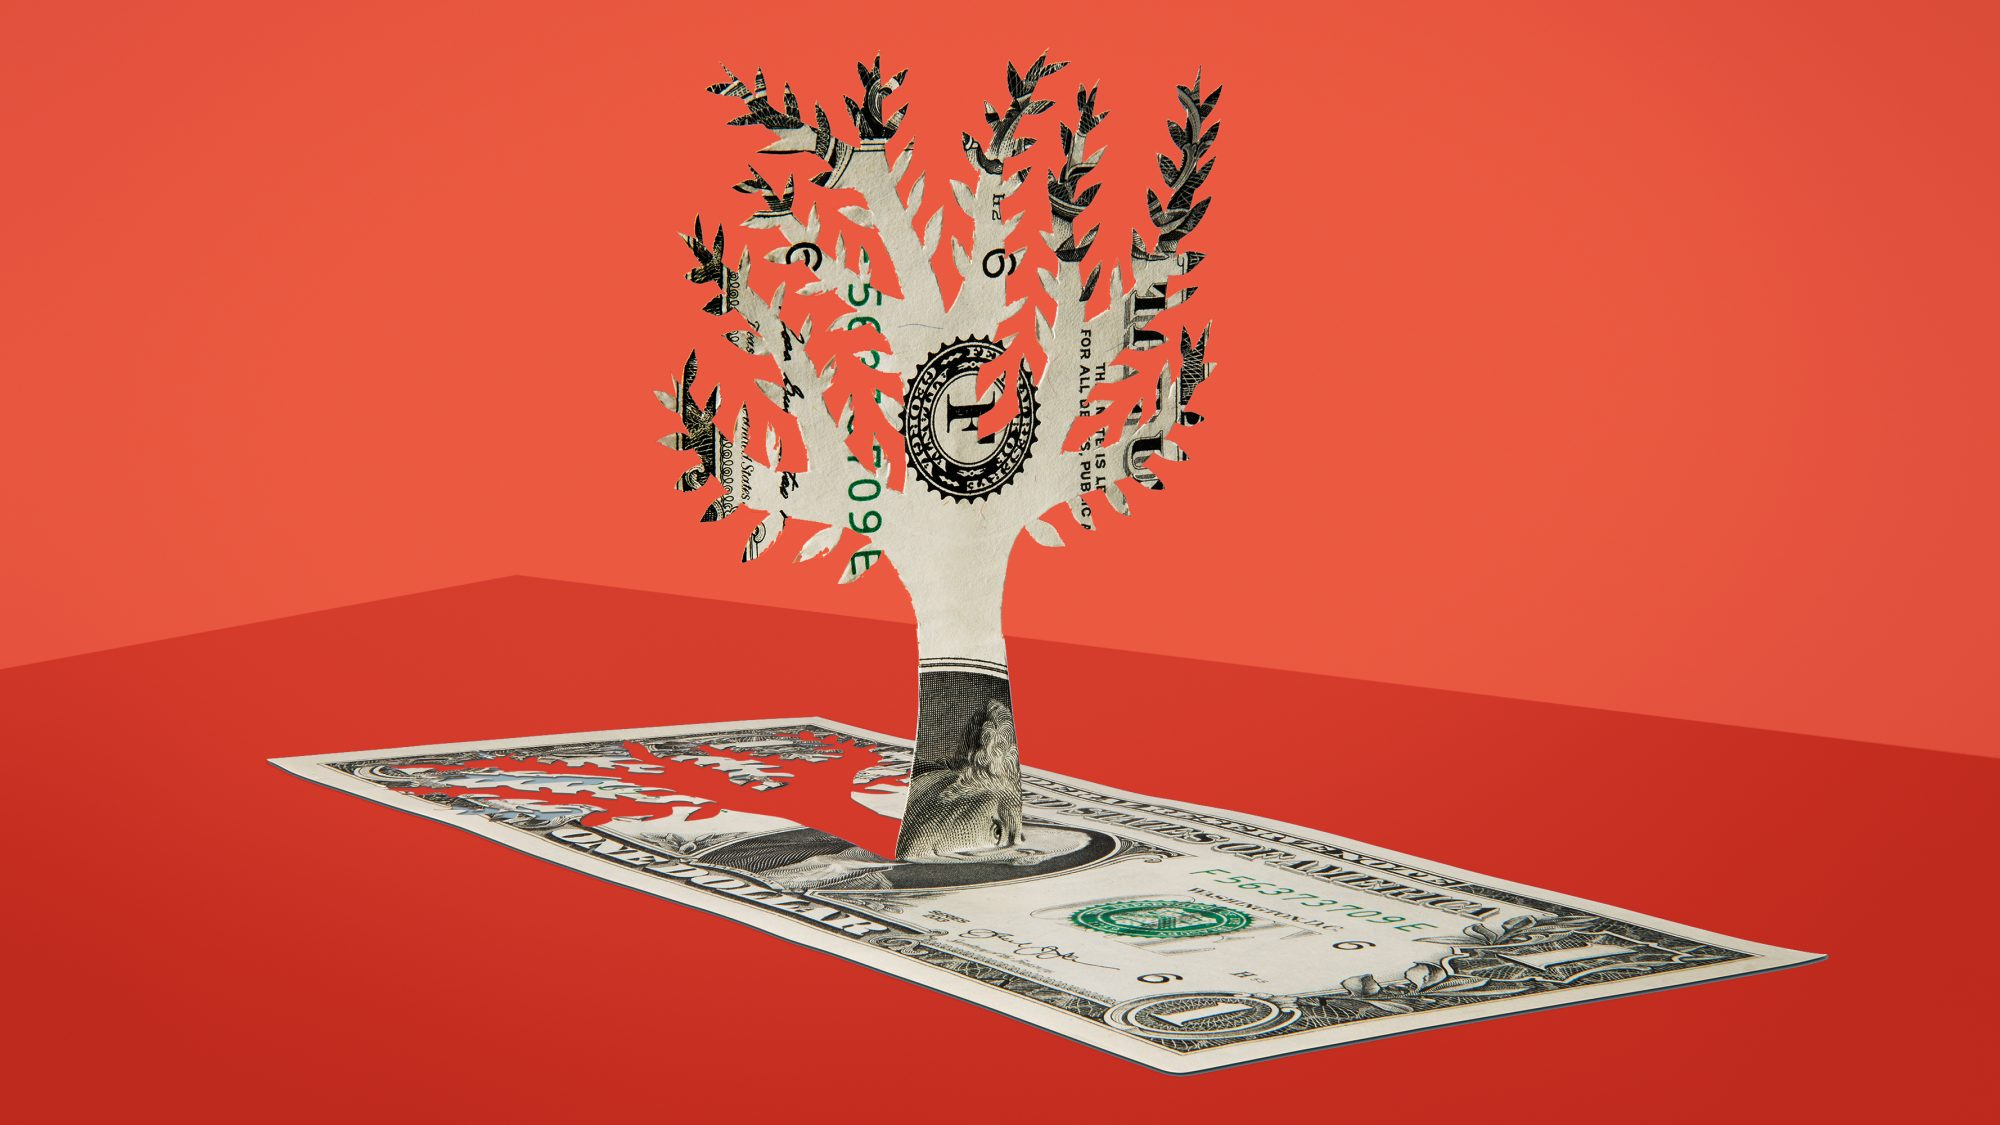 financial planner or advisor guide - money tree on red background